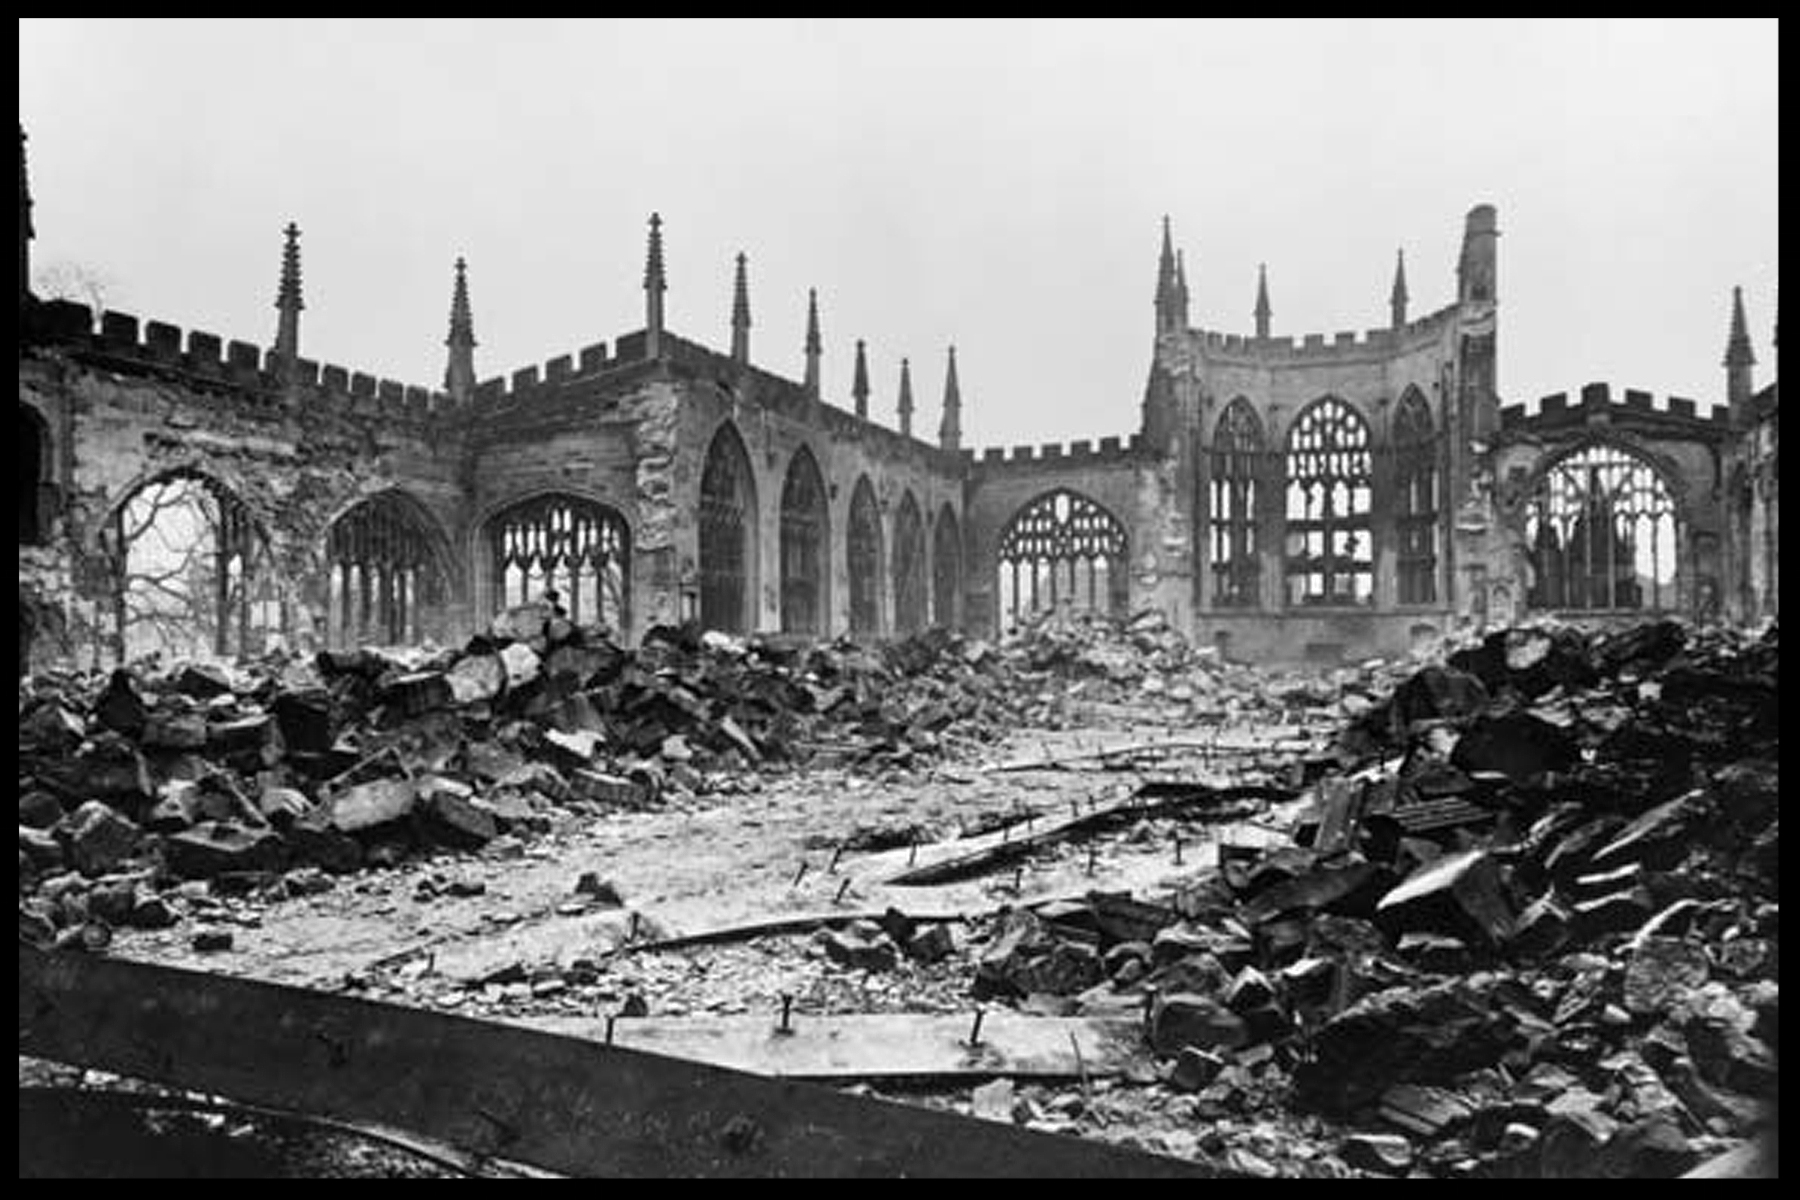 The then-extant Medieval Cathedral of St. Michael was destroyed, along with almost 5,000 homes and a substantial portion of Coventry's industries, in the massive German air raid of November 14, 1940